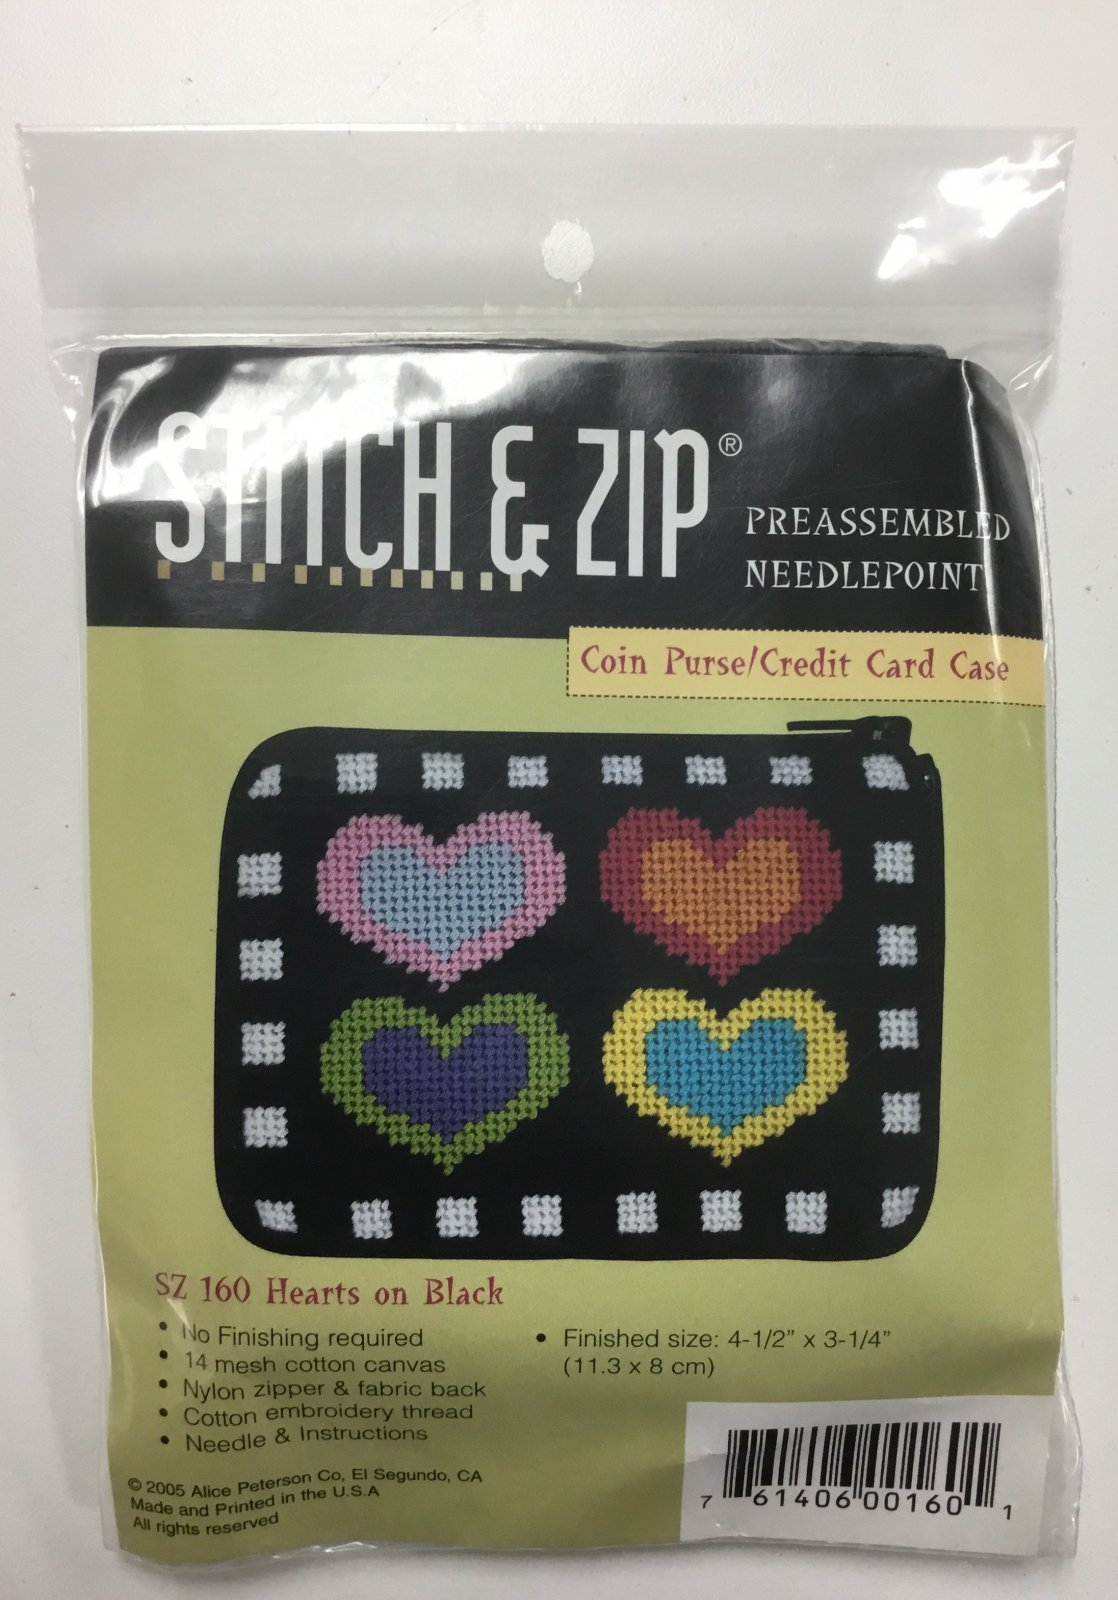 Hearts on Black Coin Purse